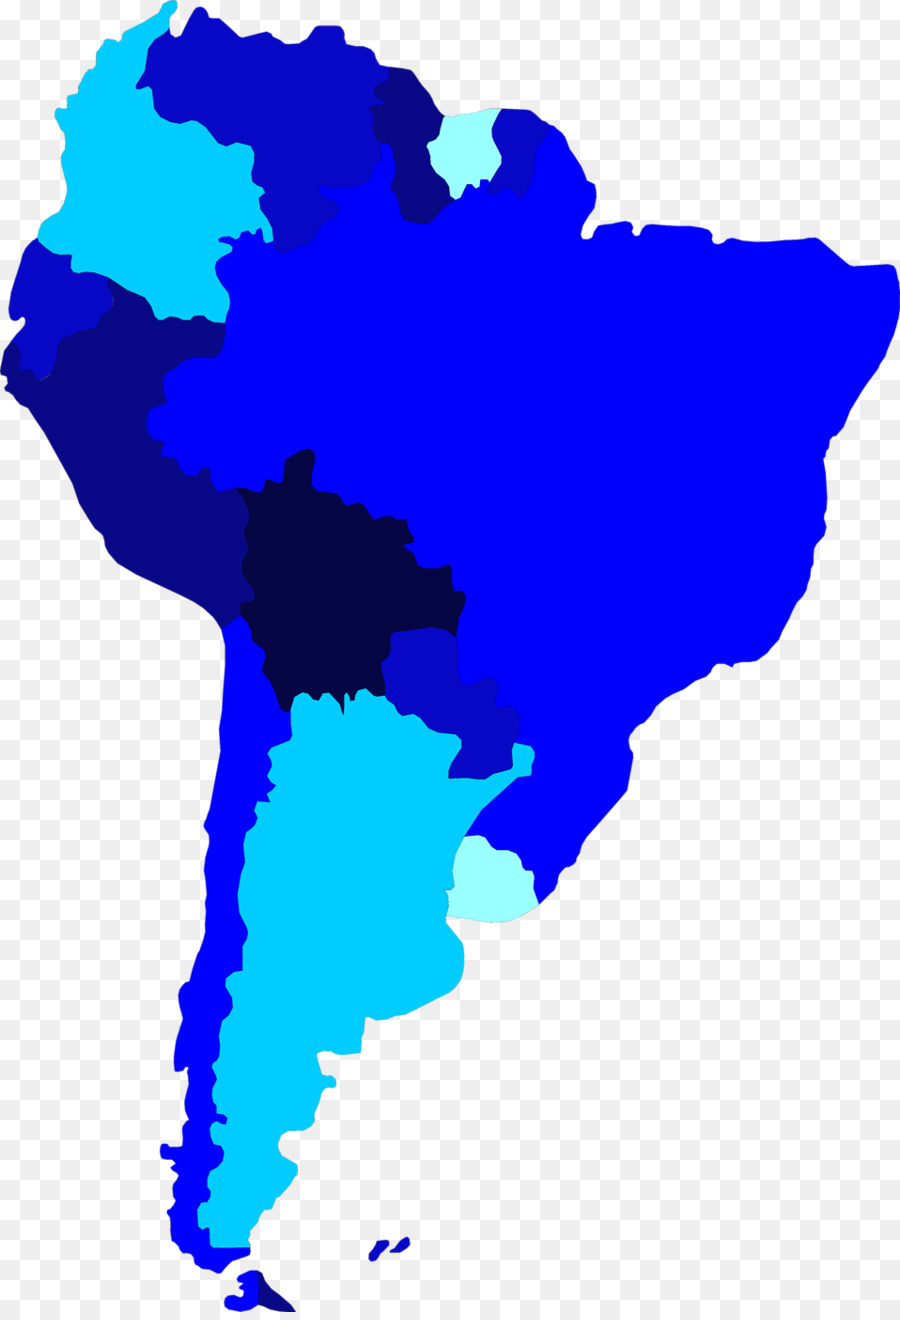 United States South America Latin America Map Clip Art South